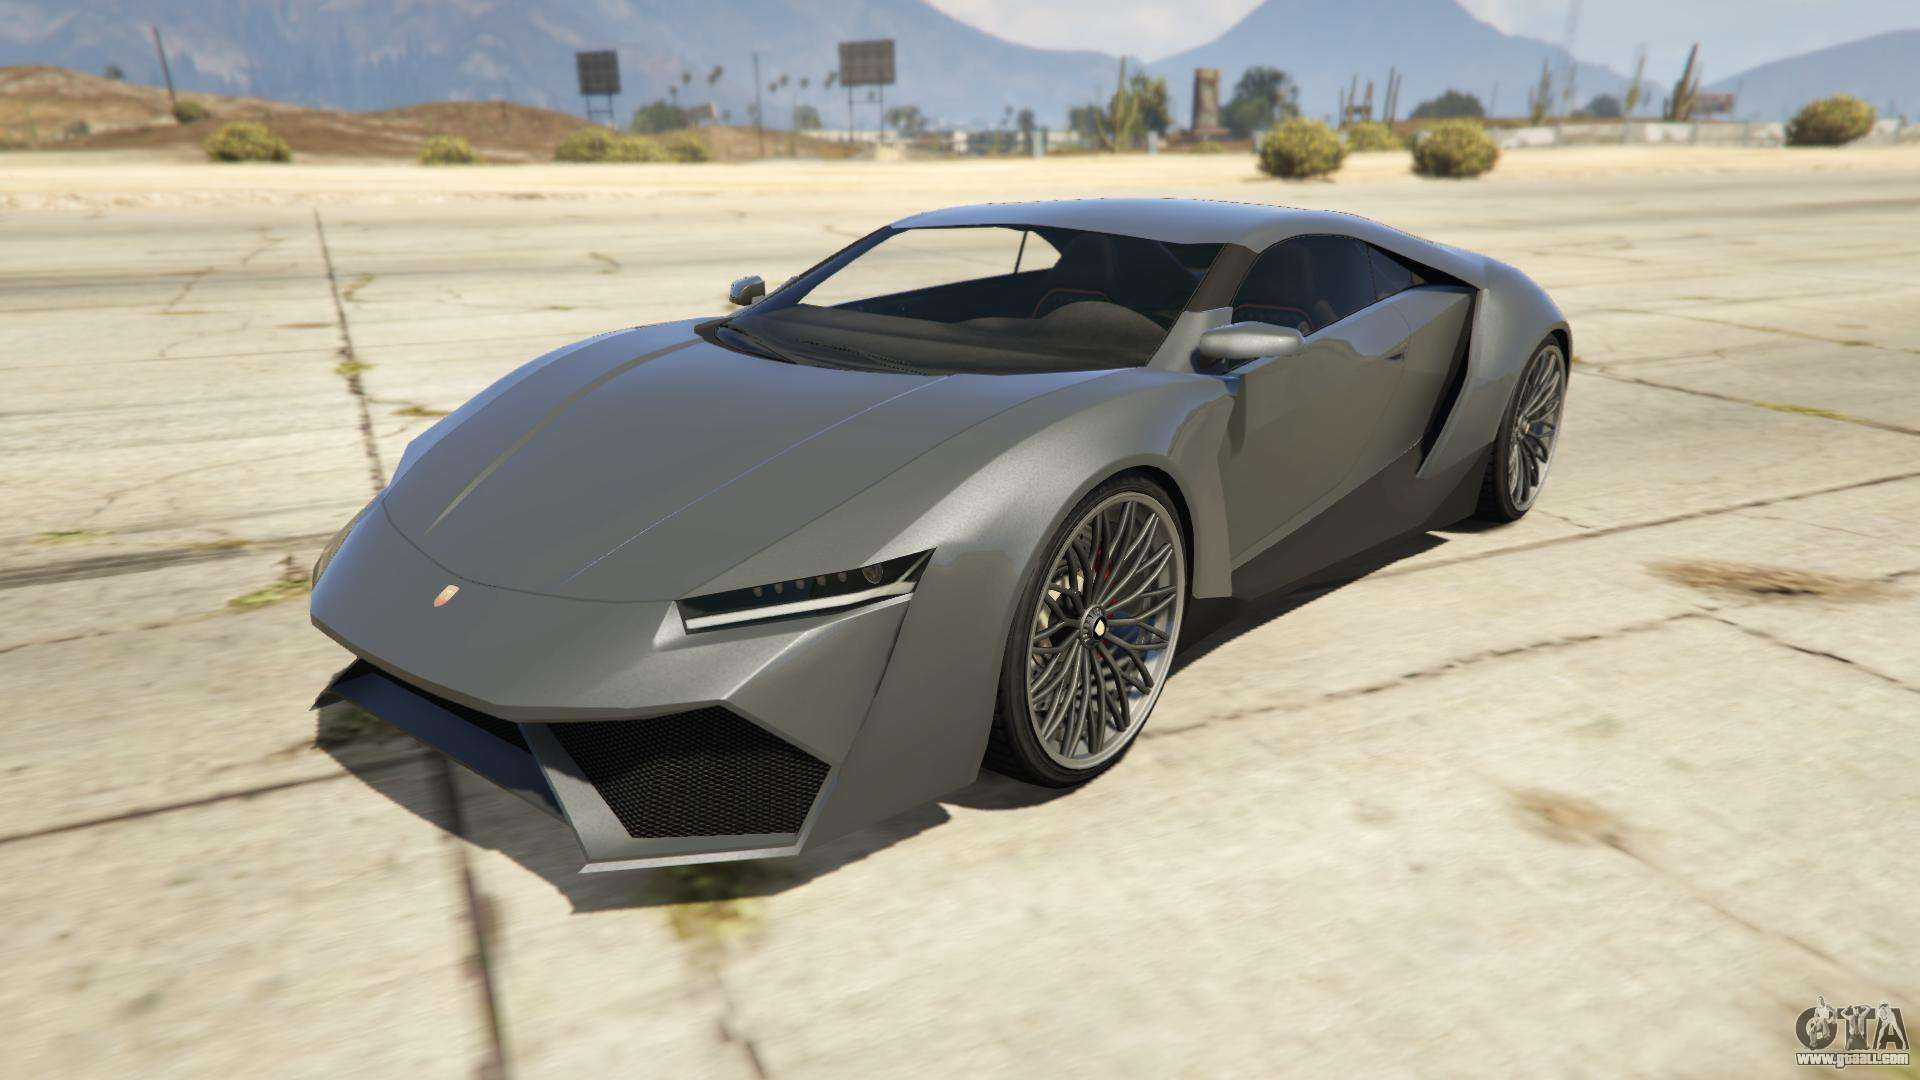 Pegassi Reaper from GTA 5 - front view